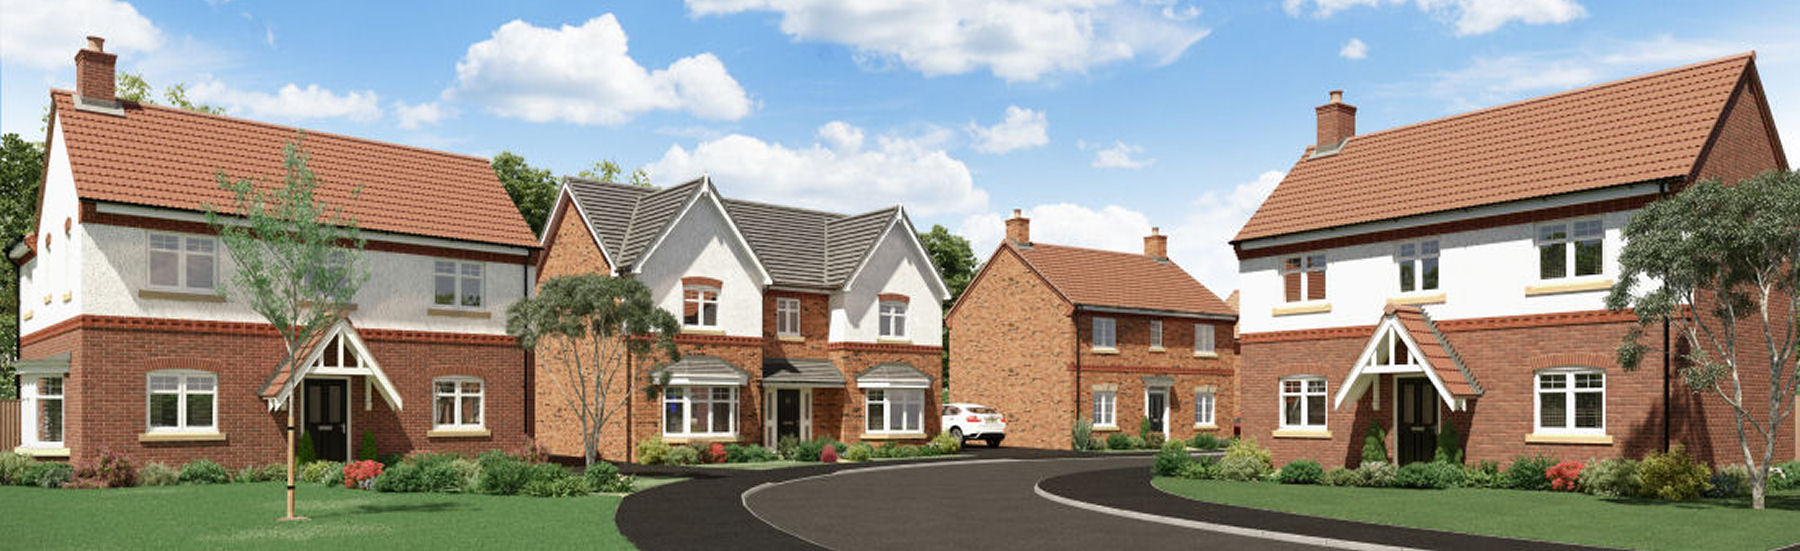 New build properties will make up the majority of homes in the First Homes scheme.